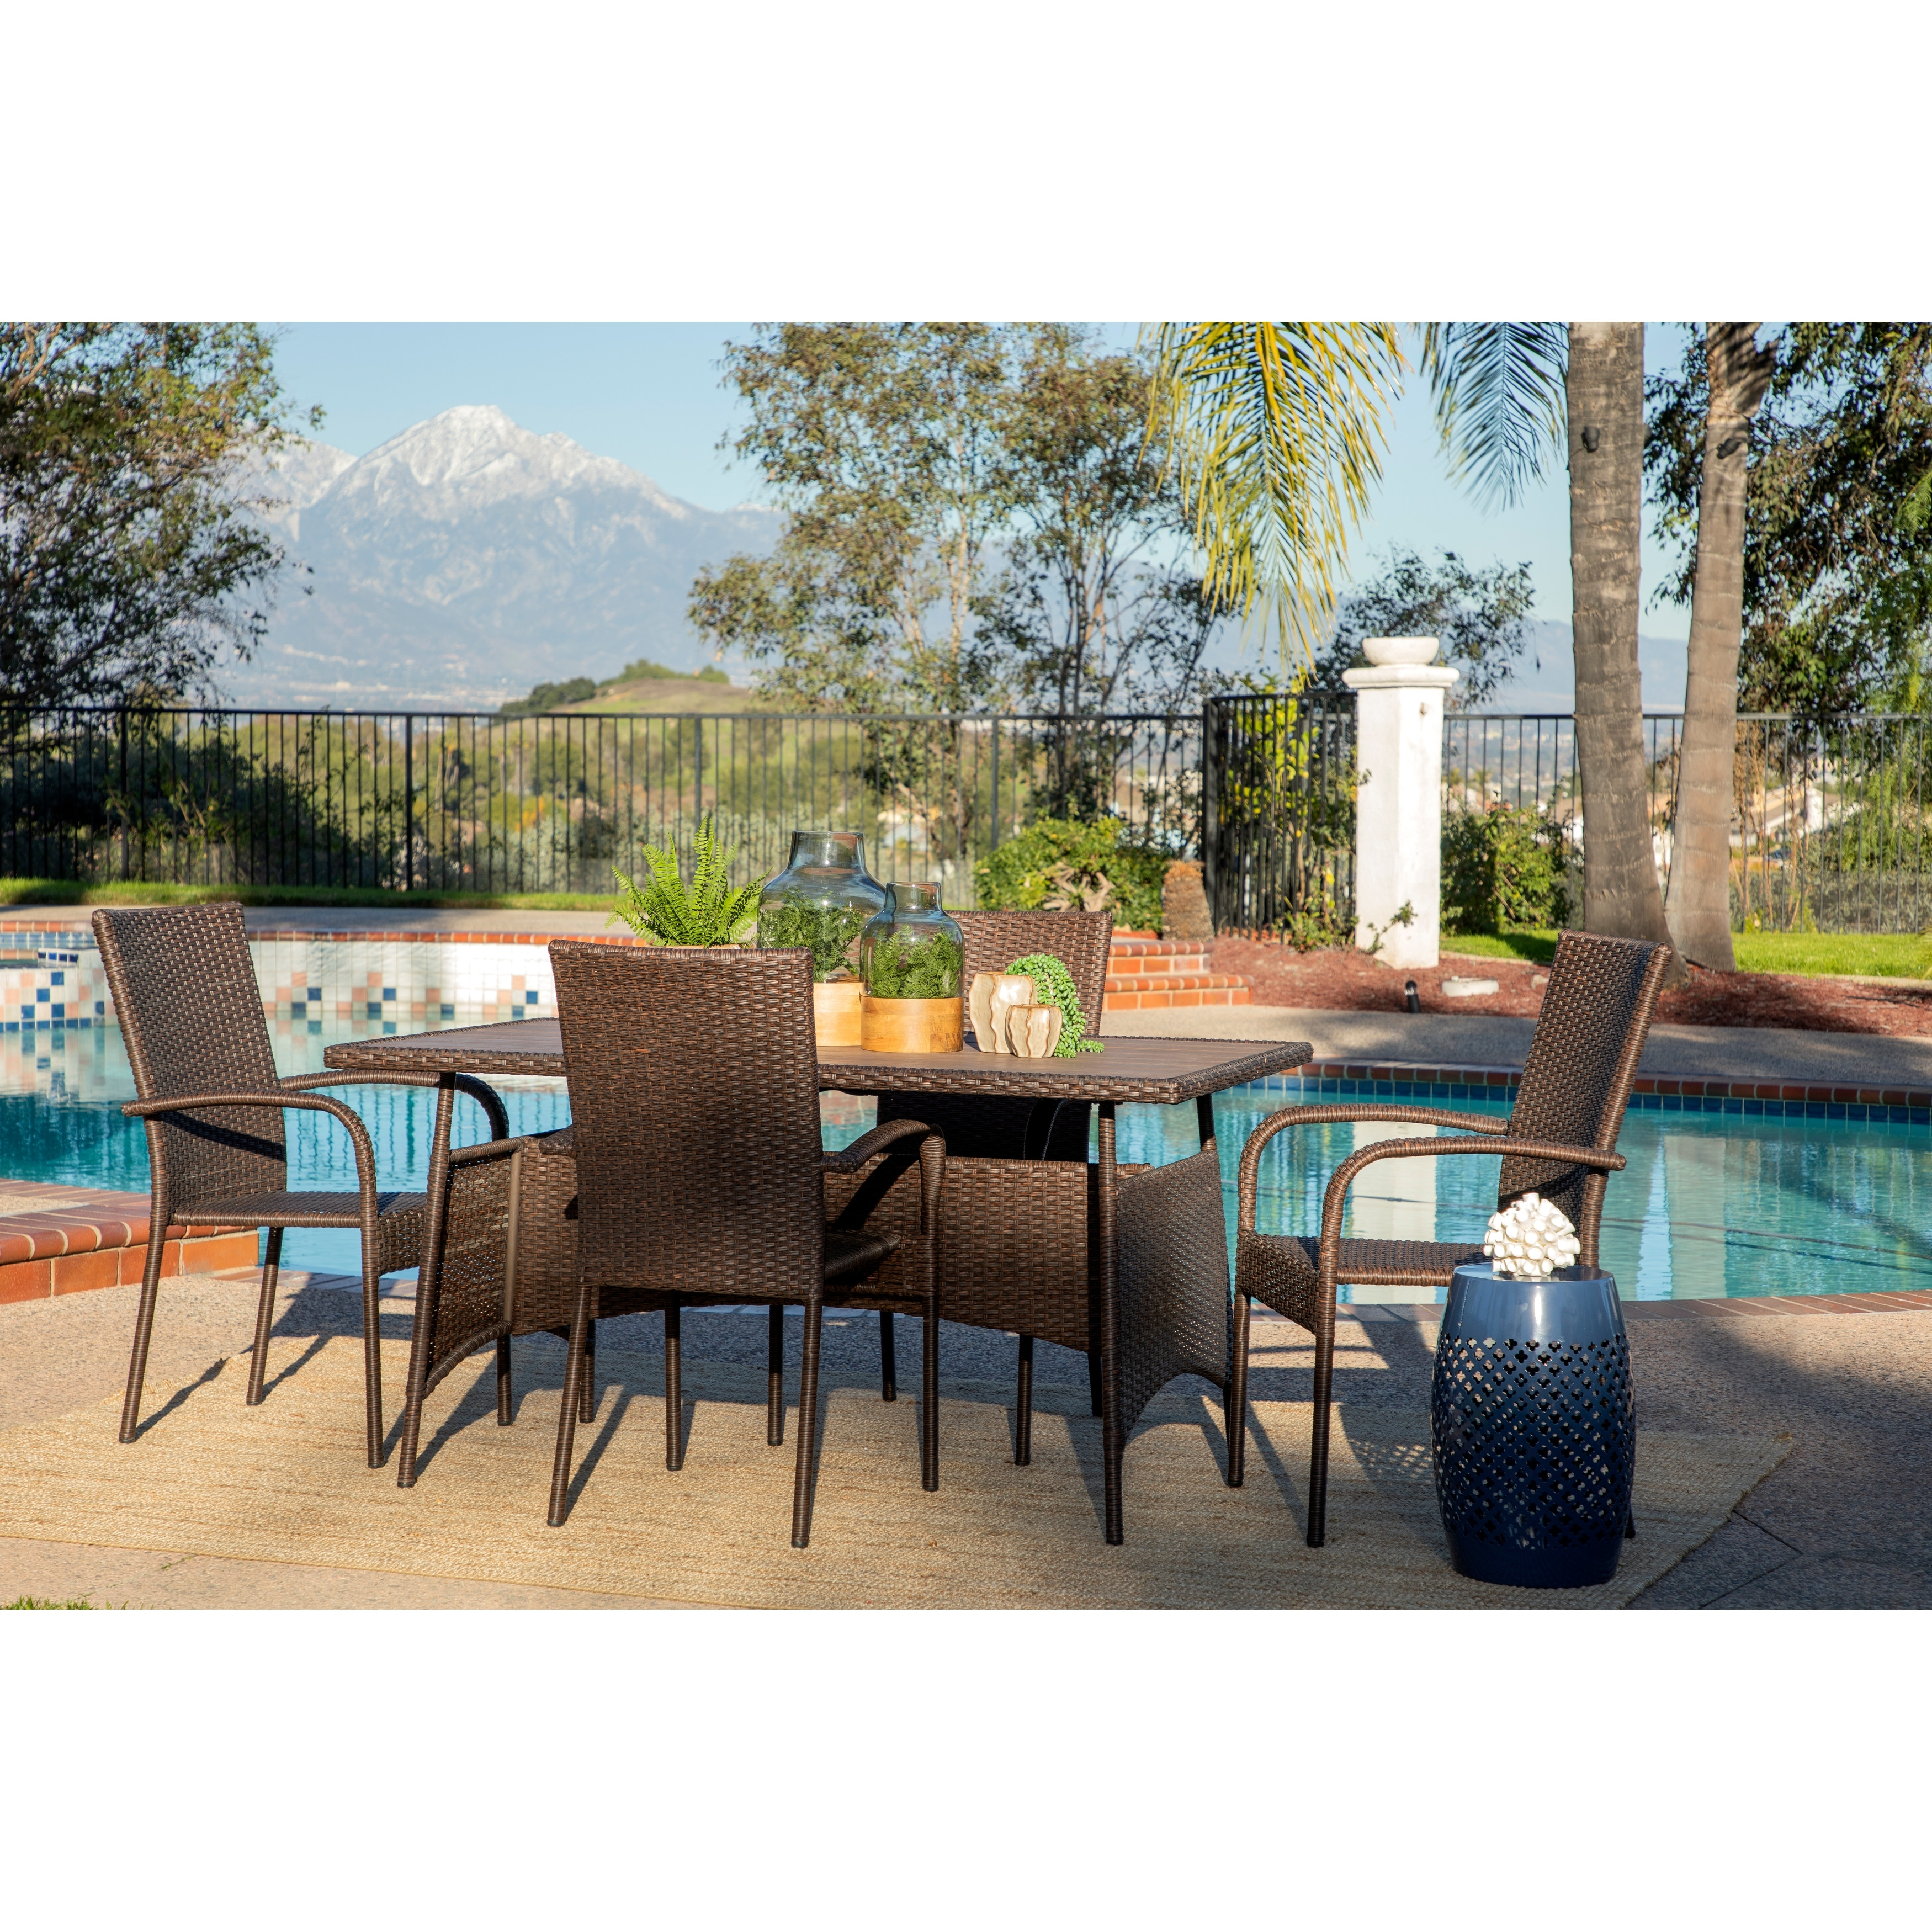 Rhonn 5 Piece Brown Wicker Outdoor Dining Set By Havenside Home Overstock 29925191